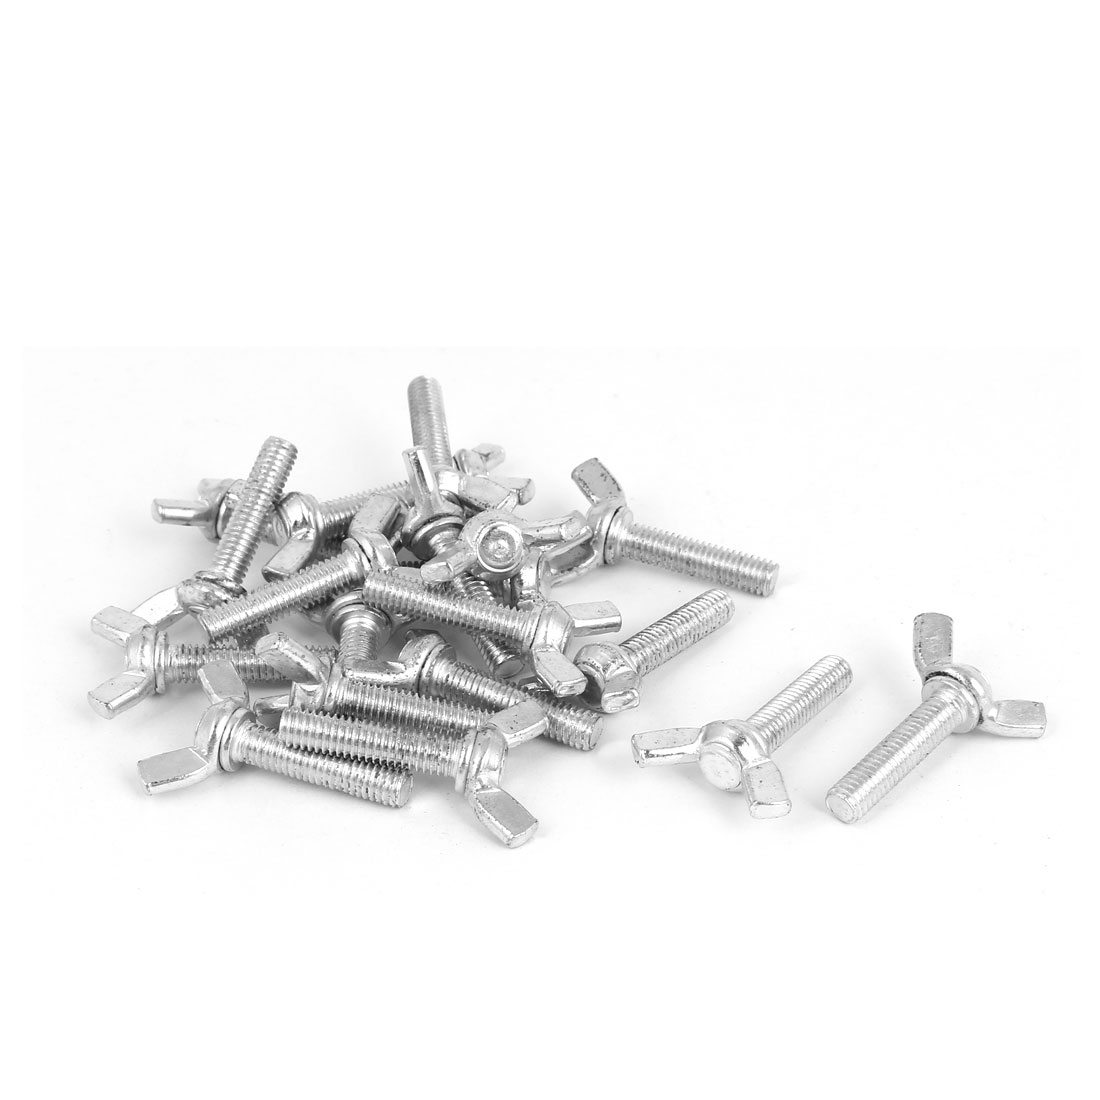 M6x25mm Thread Carbon Steel Wing Bolt Butterfly Screws Silver Tone 20pcs